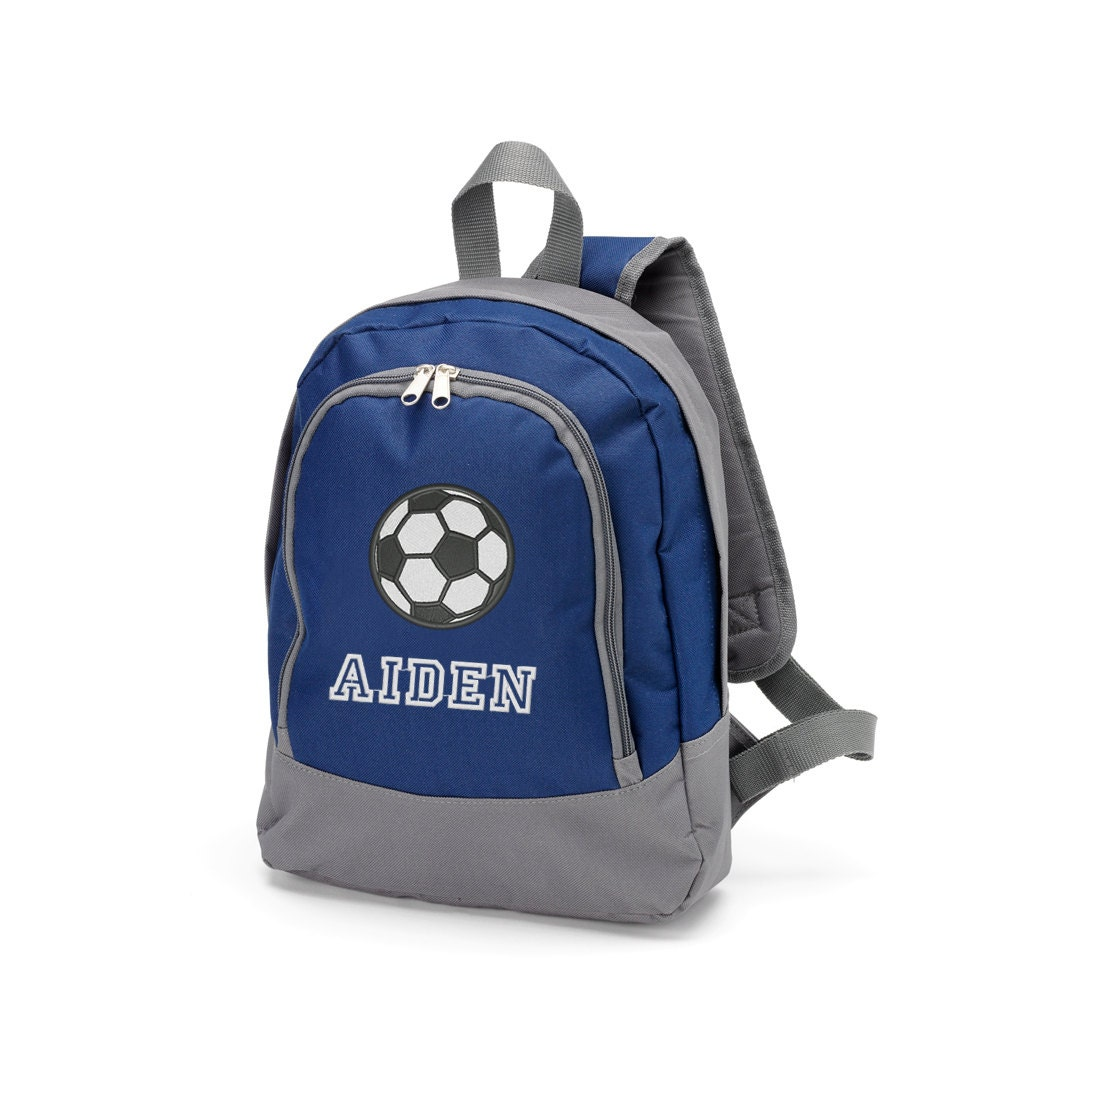 Backpack size: x 14 x 12 in [50 x 36 x 30 cm] Beyond its storage capacity, this soccer ball backpack is designed with padded, adjustable straps for a comfortable, ergonomic fit. Made with durable polyester and nylon fabric, this soccer bag is lightweight, yet rugged enough to withstand rain, mud, and dirt, allowing players to haul their.